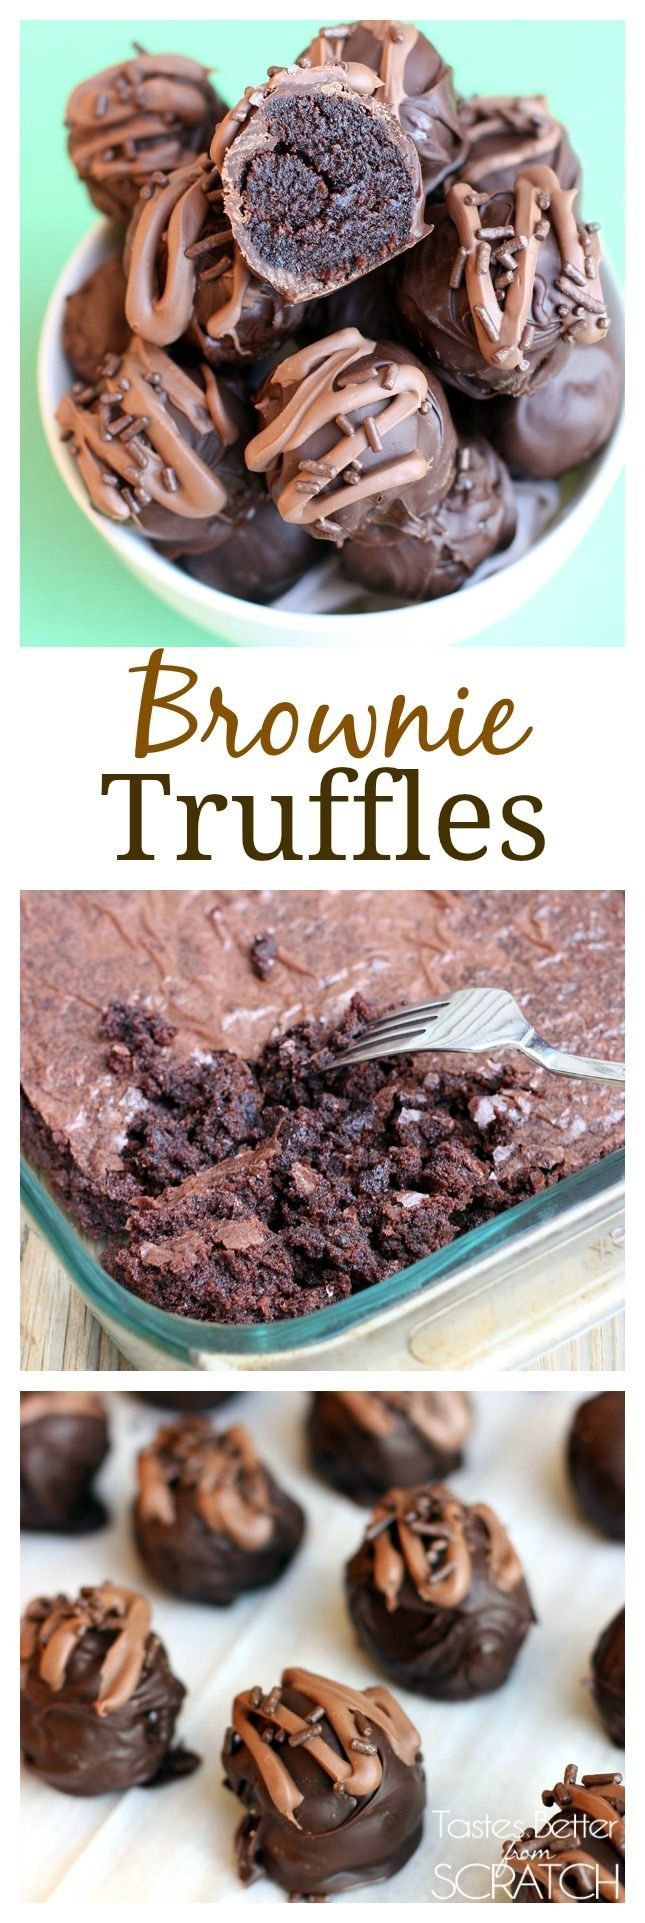 Homemade Brownies made into a delicious chocolate truffle! SO easy and deliciously addicting!